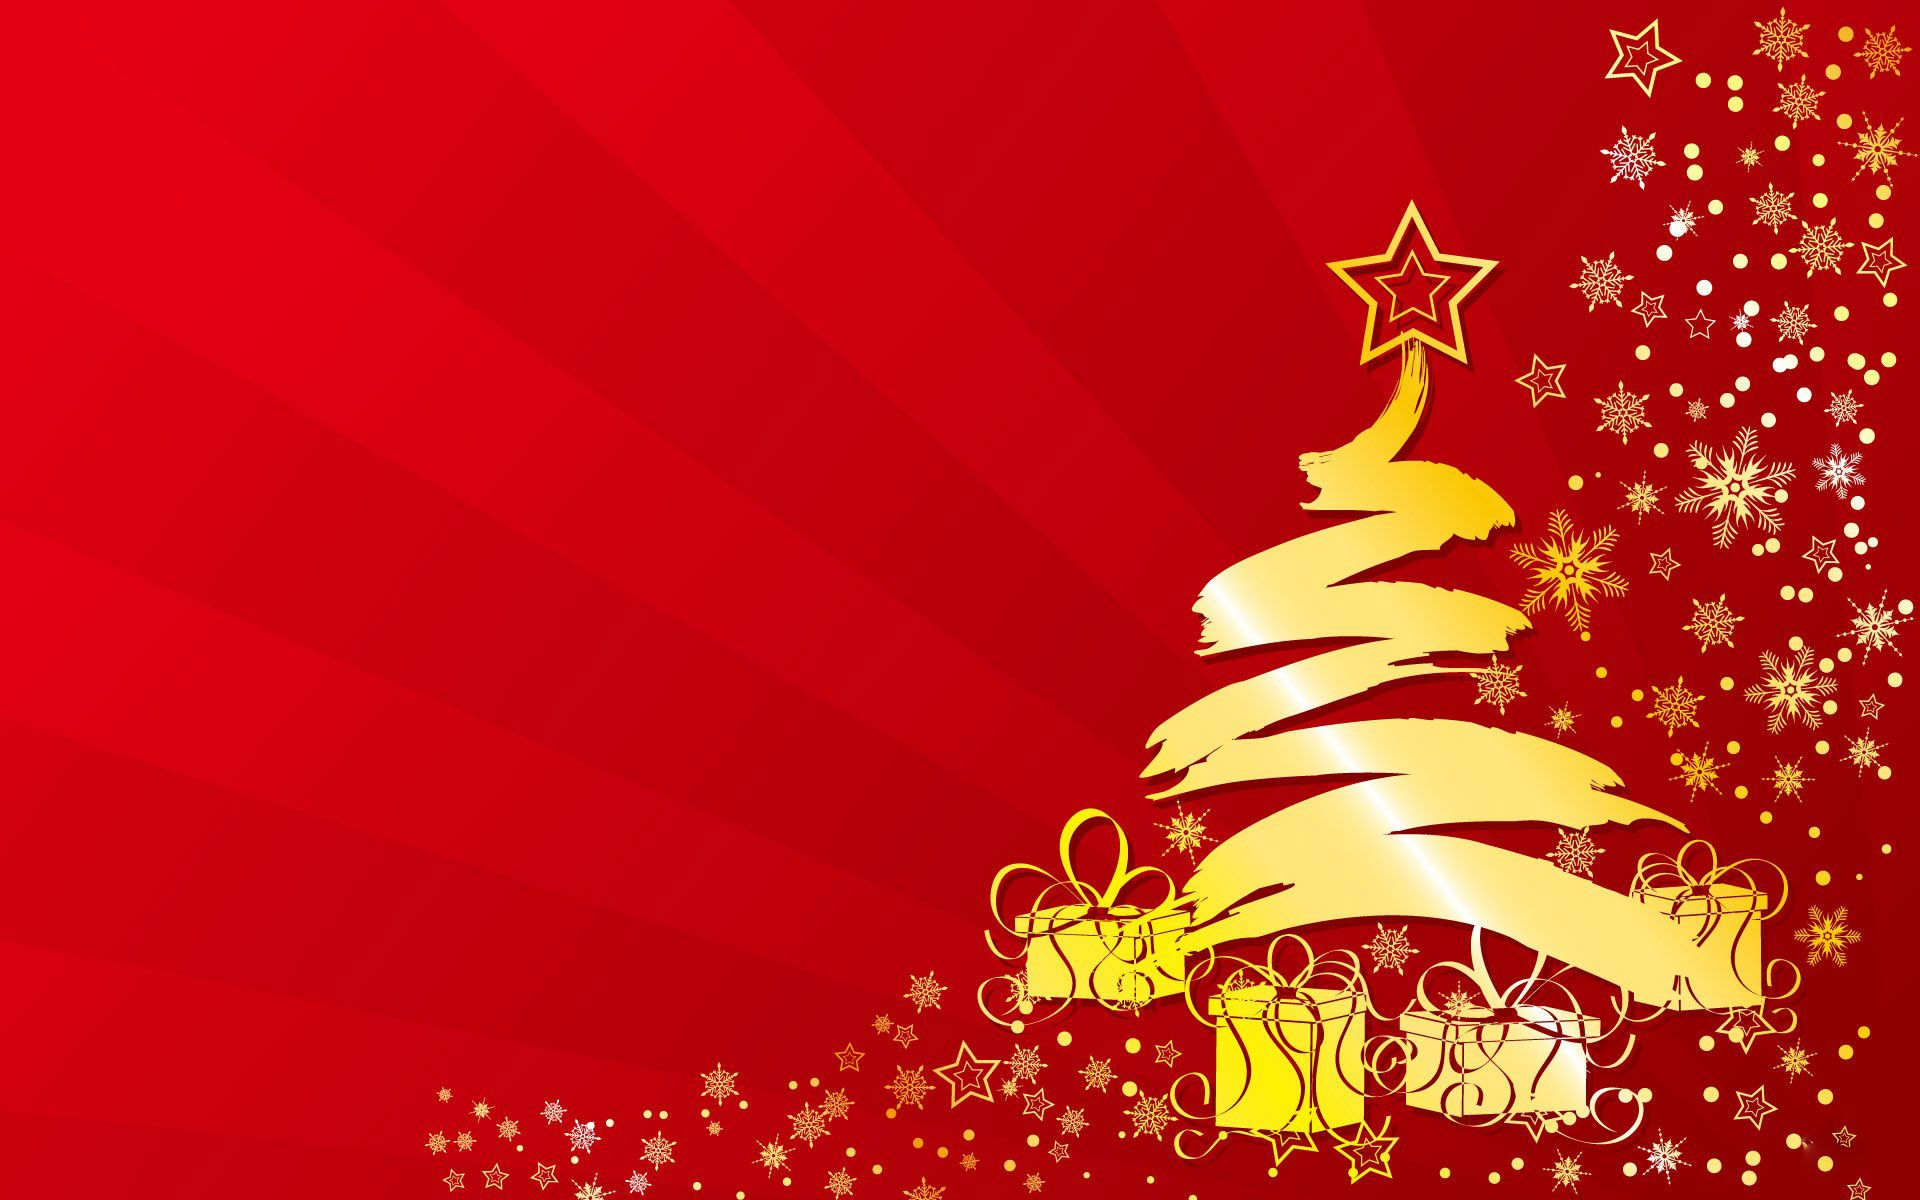 Christmas Tree Clipart Red Christmas Tree Background Hd Wallpapers